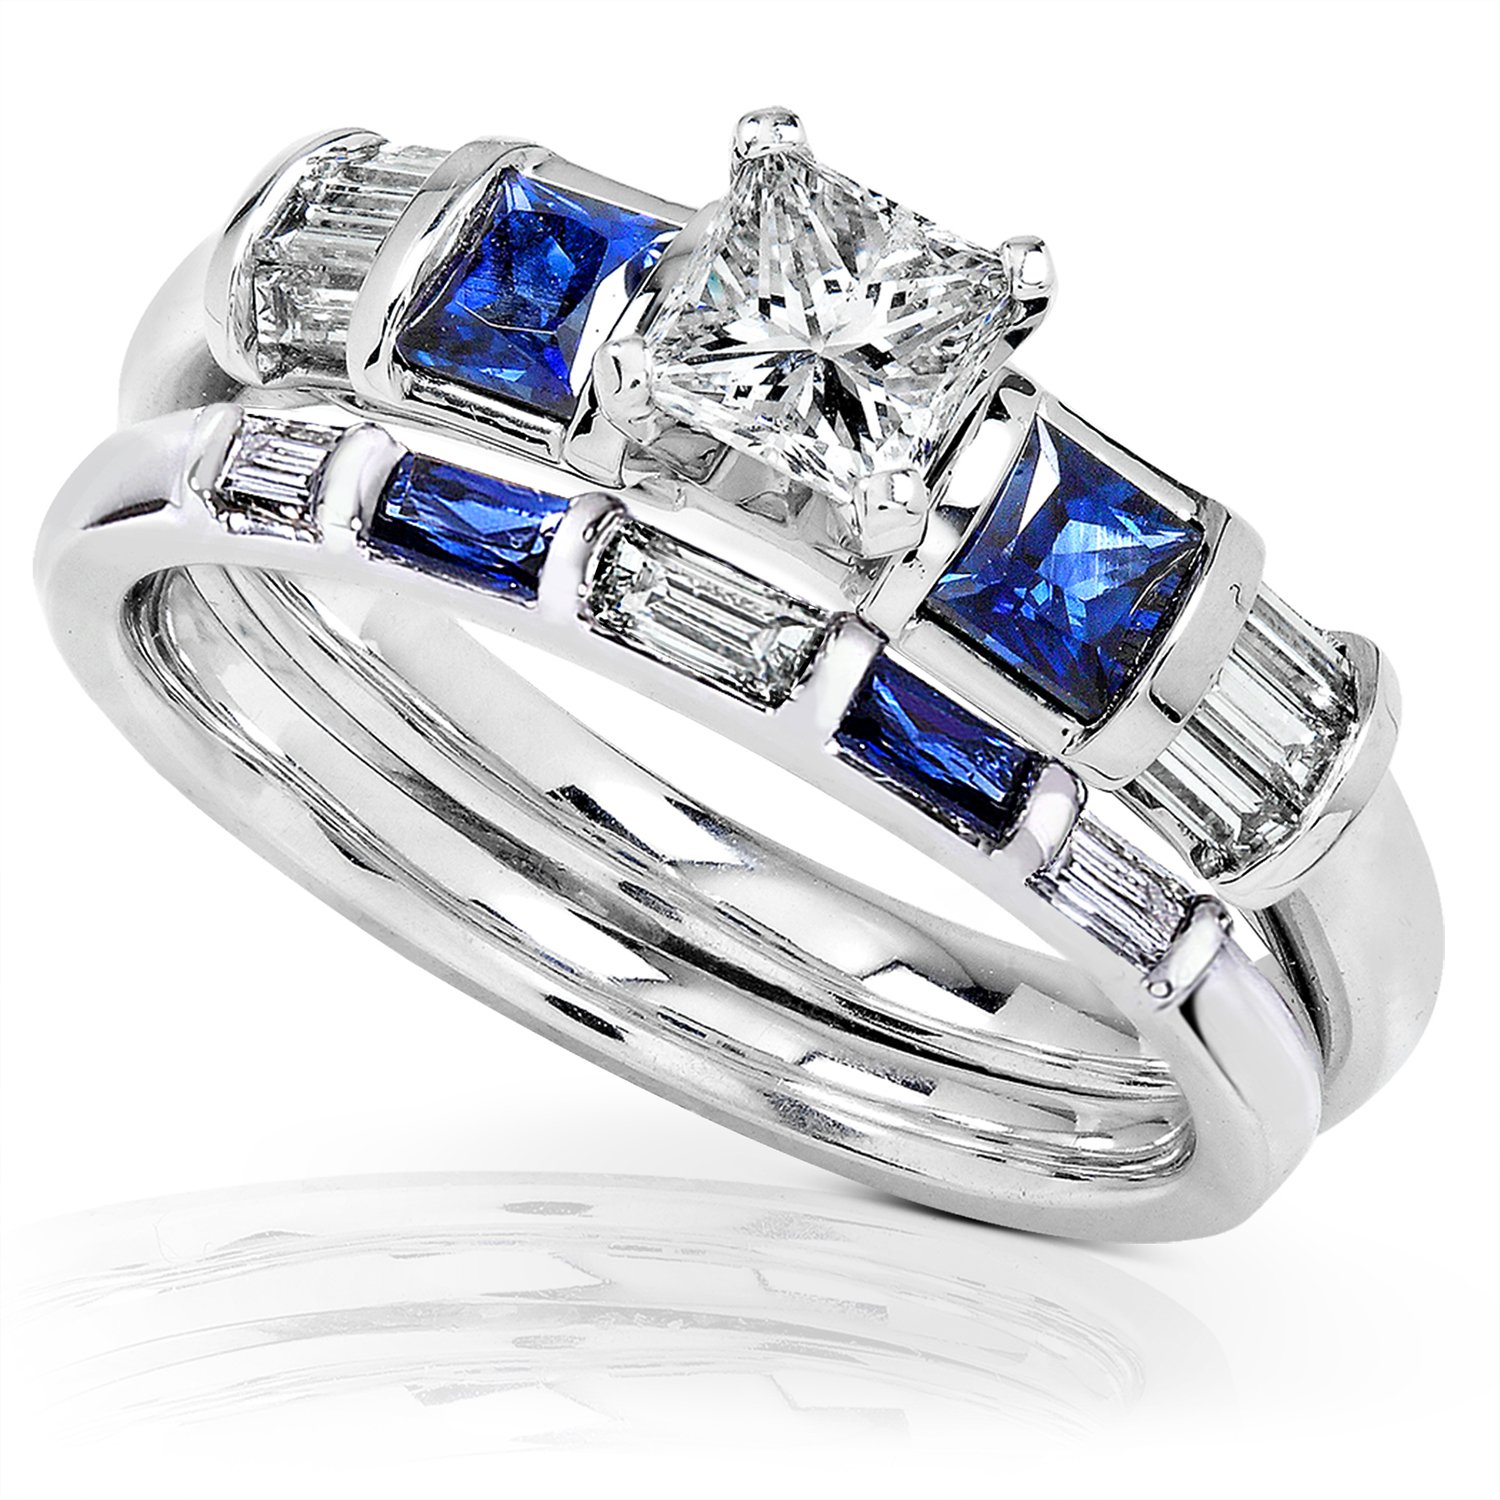 Blue Sapphire & Diamond Wedding Rings Set 1 Carat (ctw) In 14k White Gold